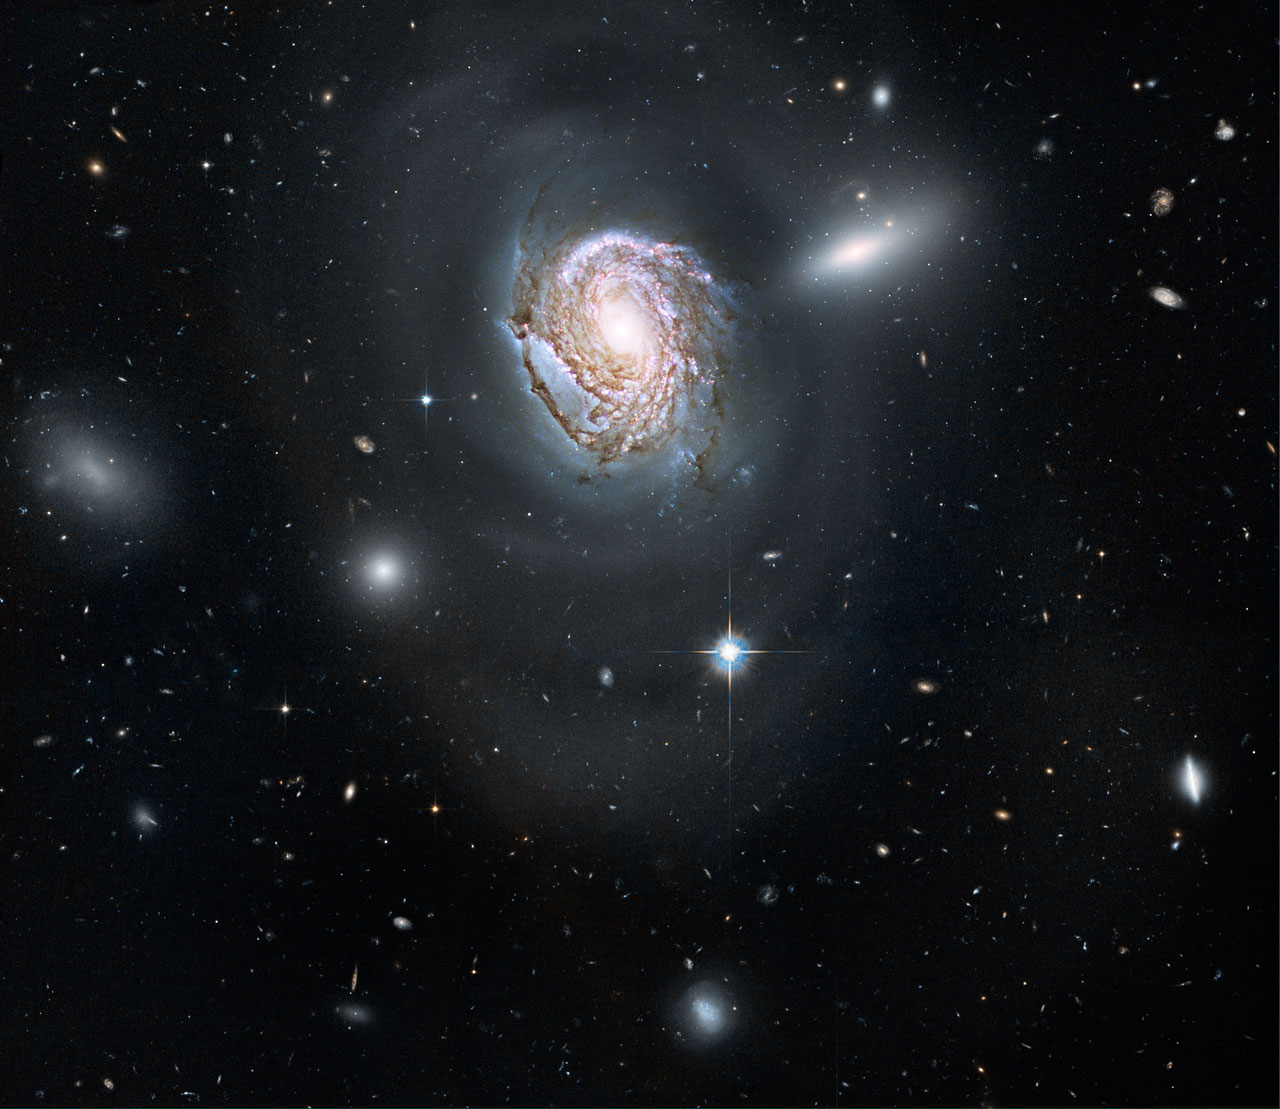 Spiral galaxy NGC 4911 in the Coma Cluster